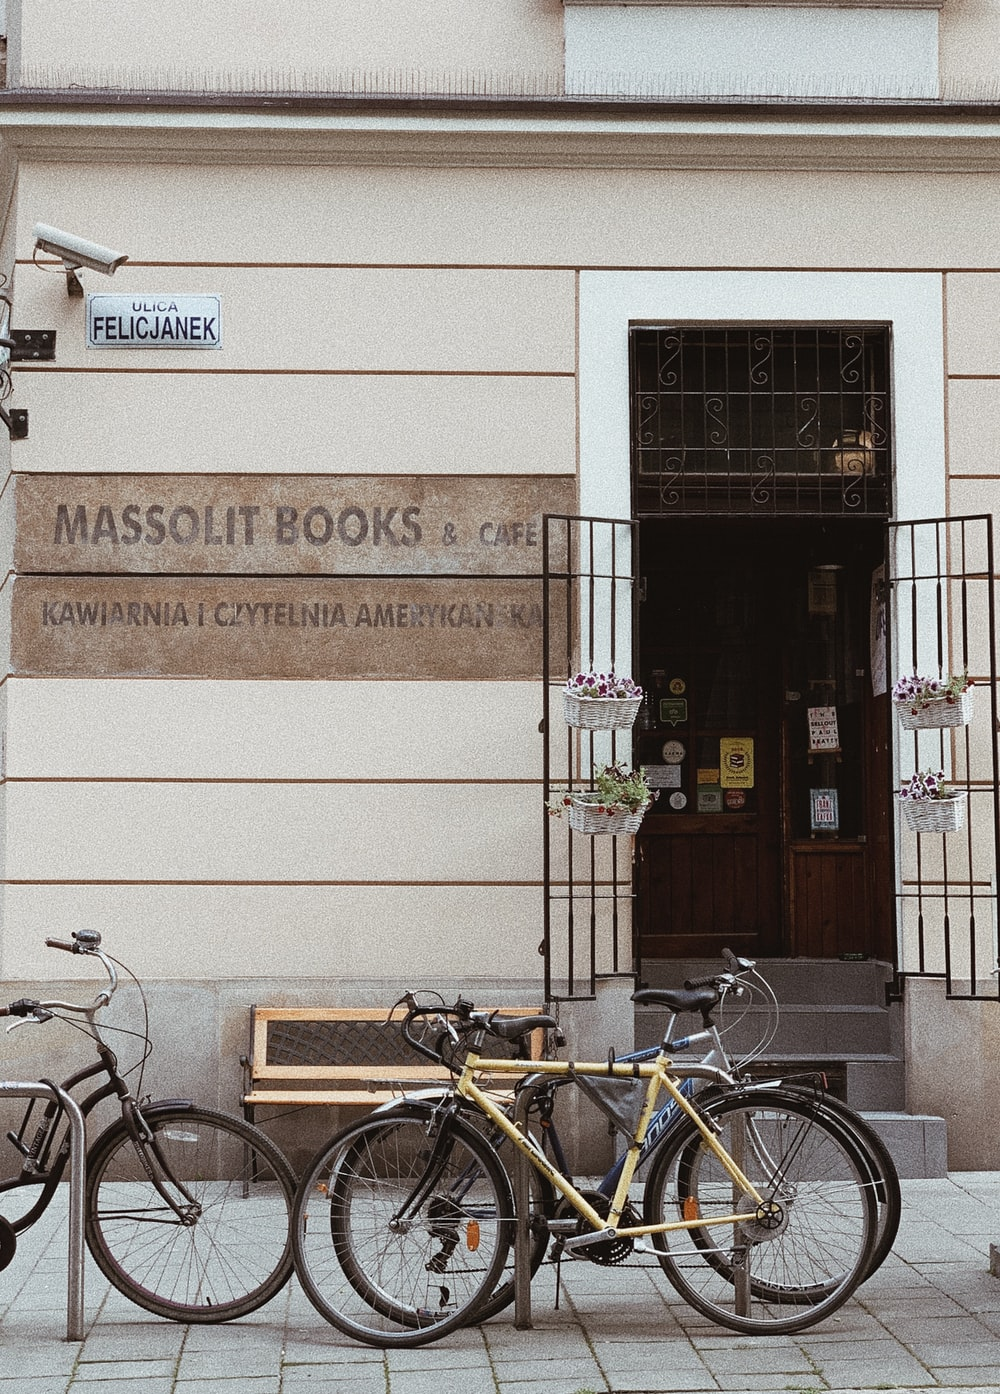 yellow bicycle parked in front of Massolit Books & Cafe